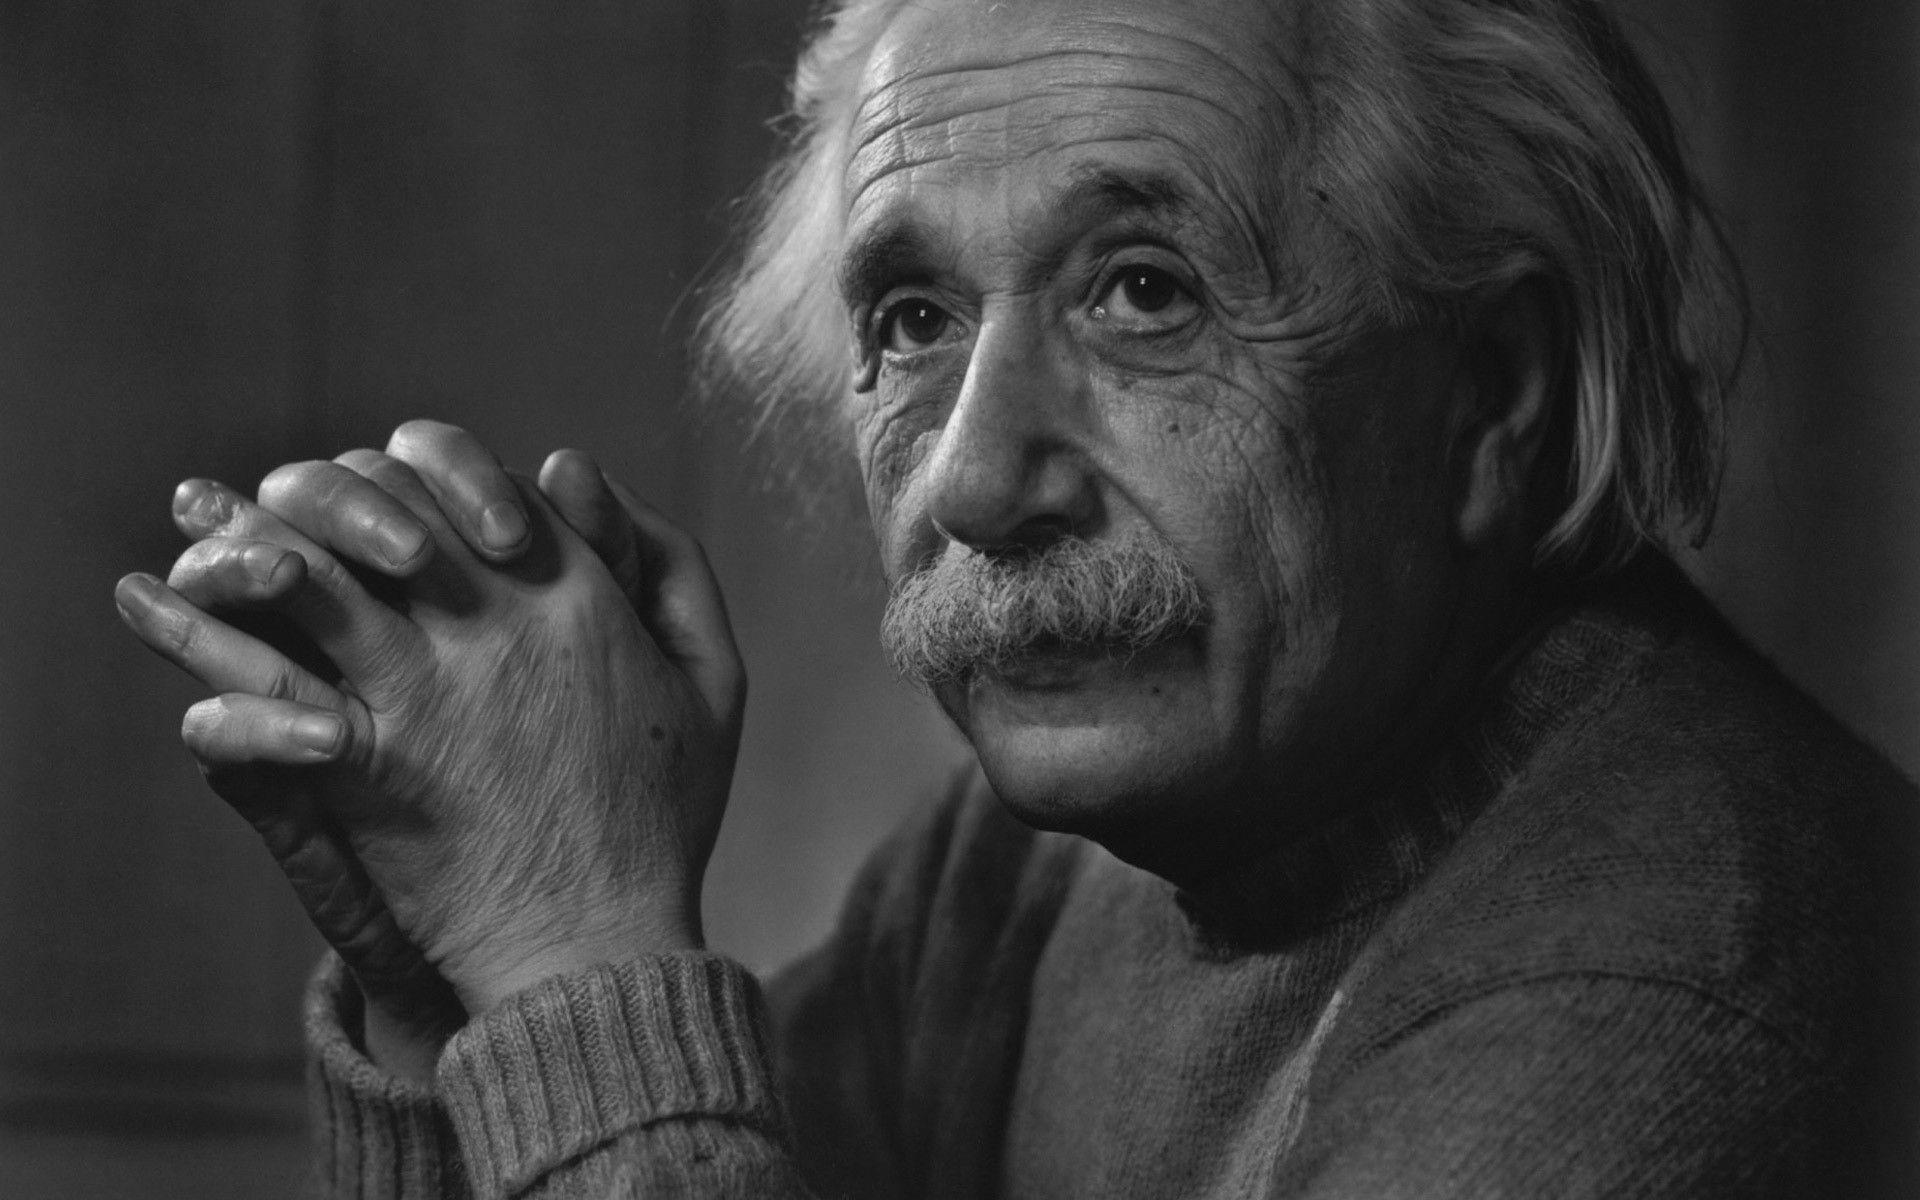 Einstein Wallpapers - Full HD wallpaper search - page 3